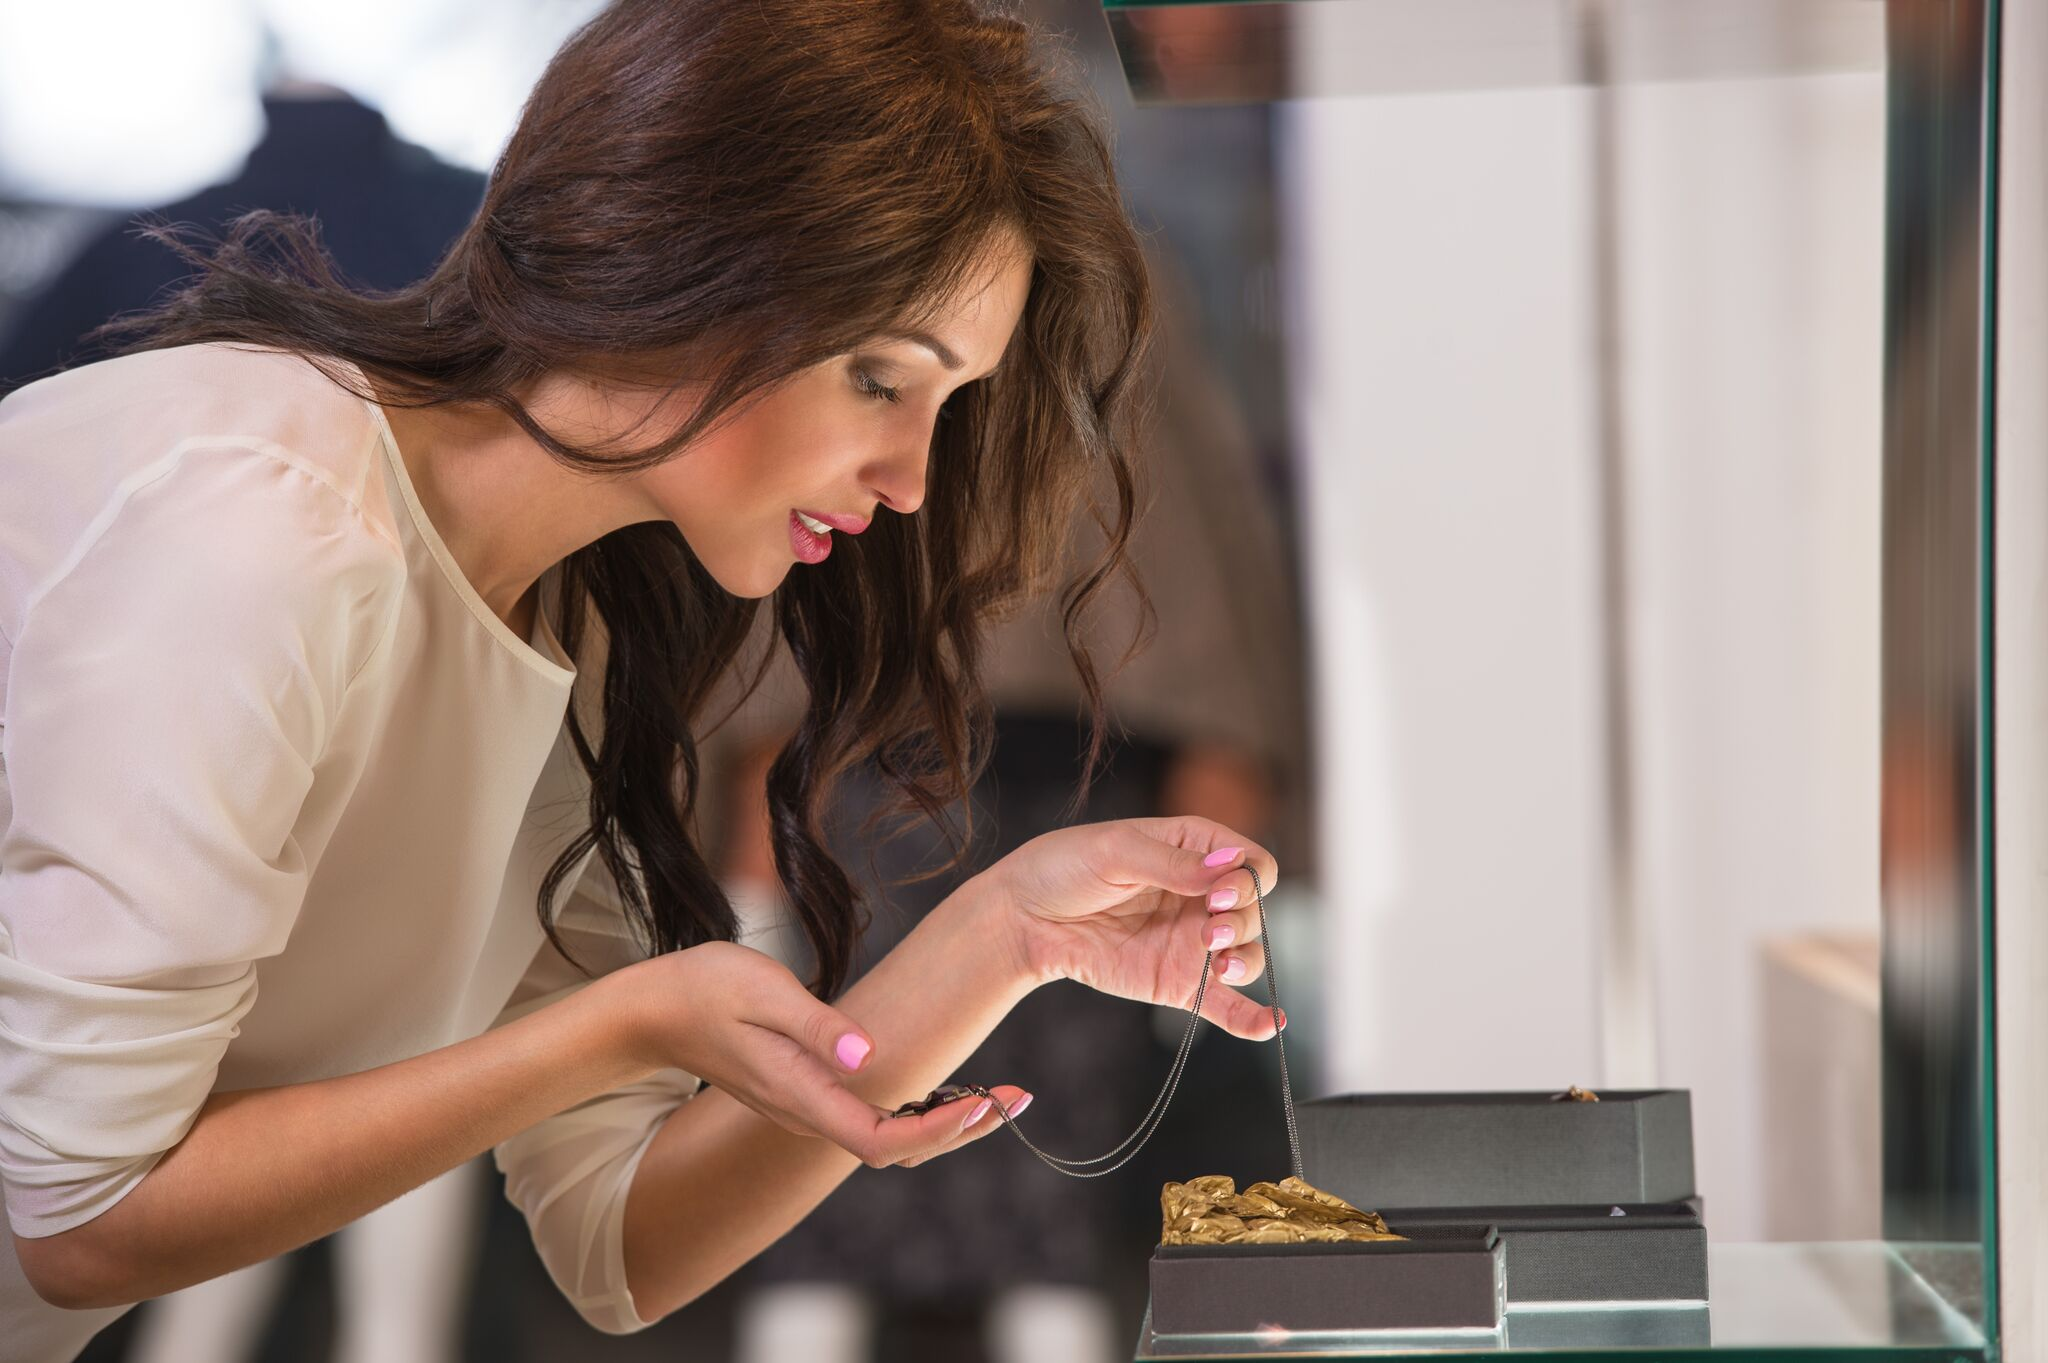 Millennial women more likely to buy jewellery for themselves